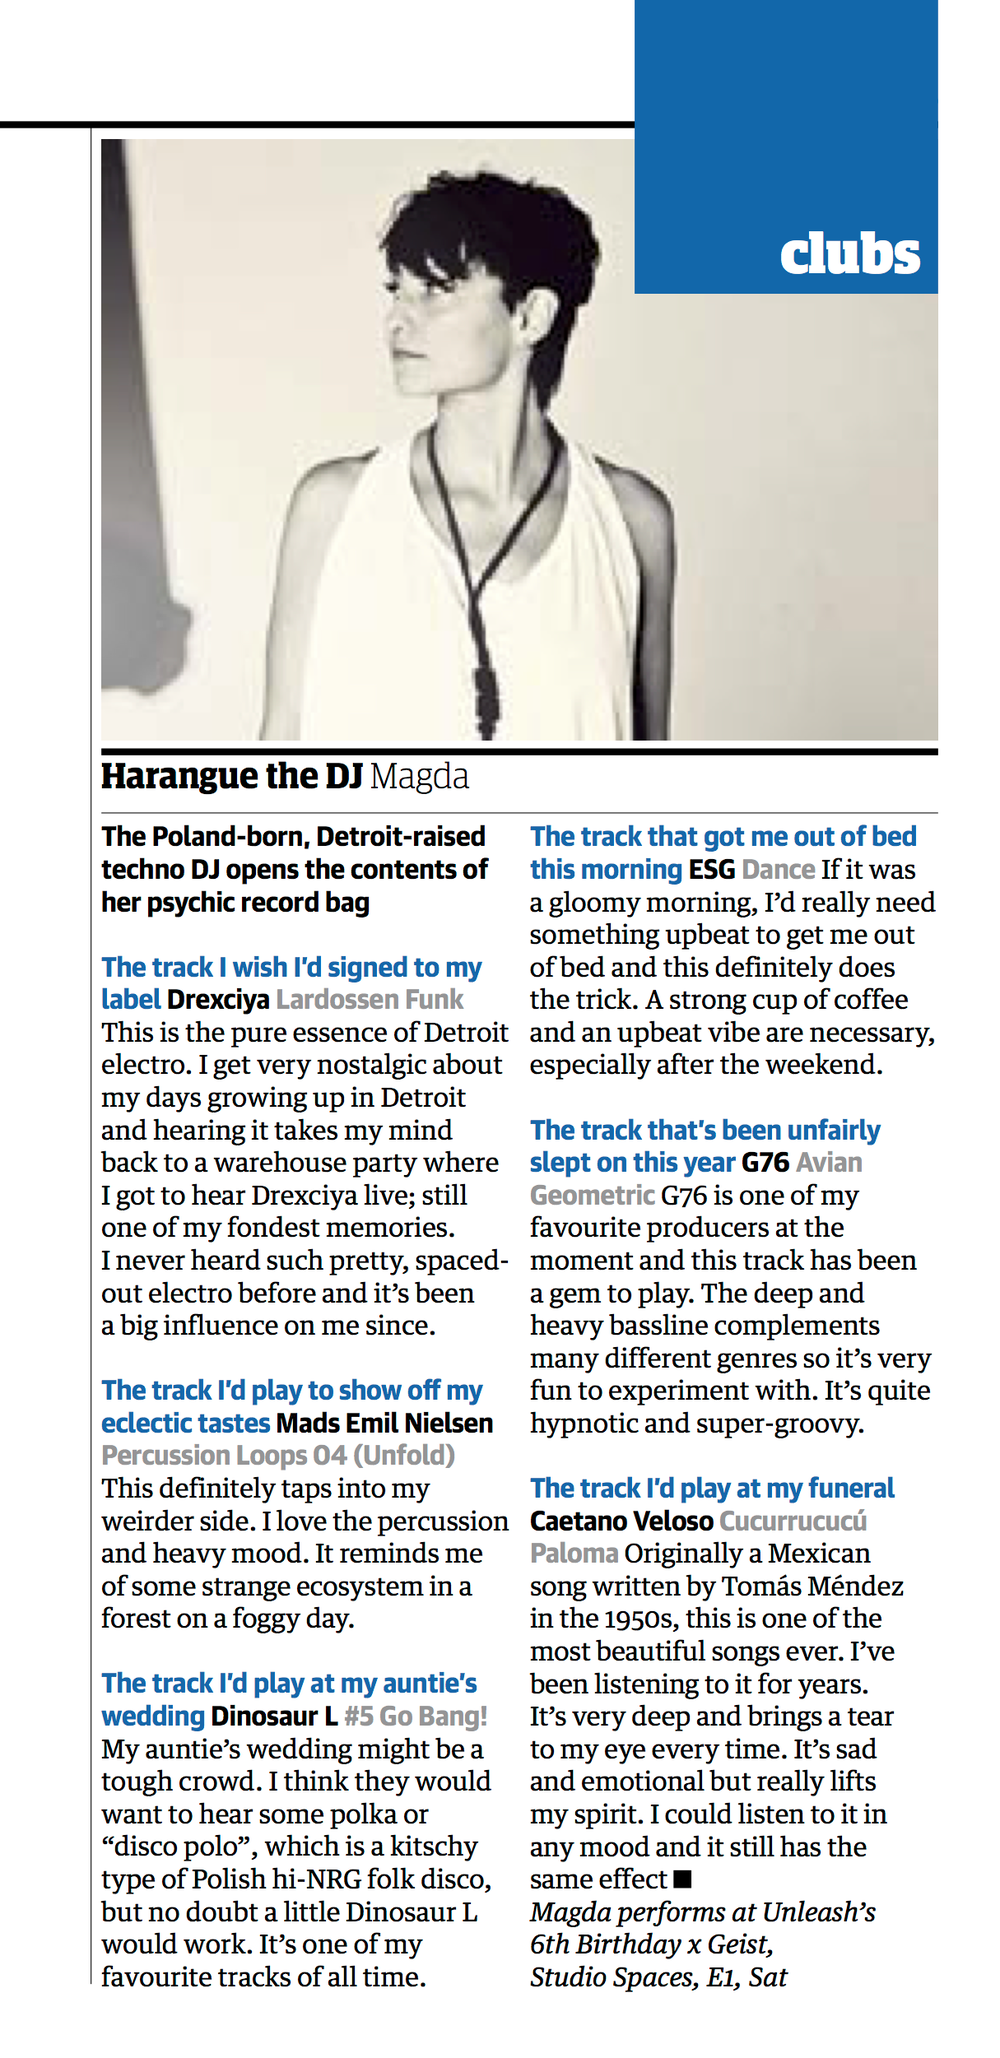 city centric artist features to support event projects - magda harangue the dj feature in guardian guide